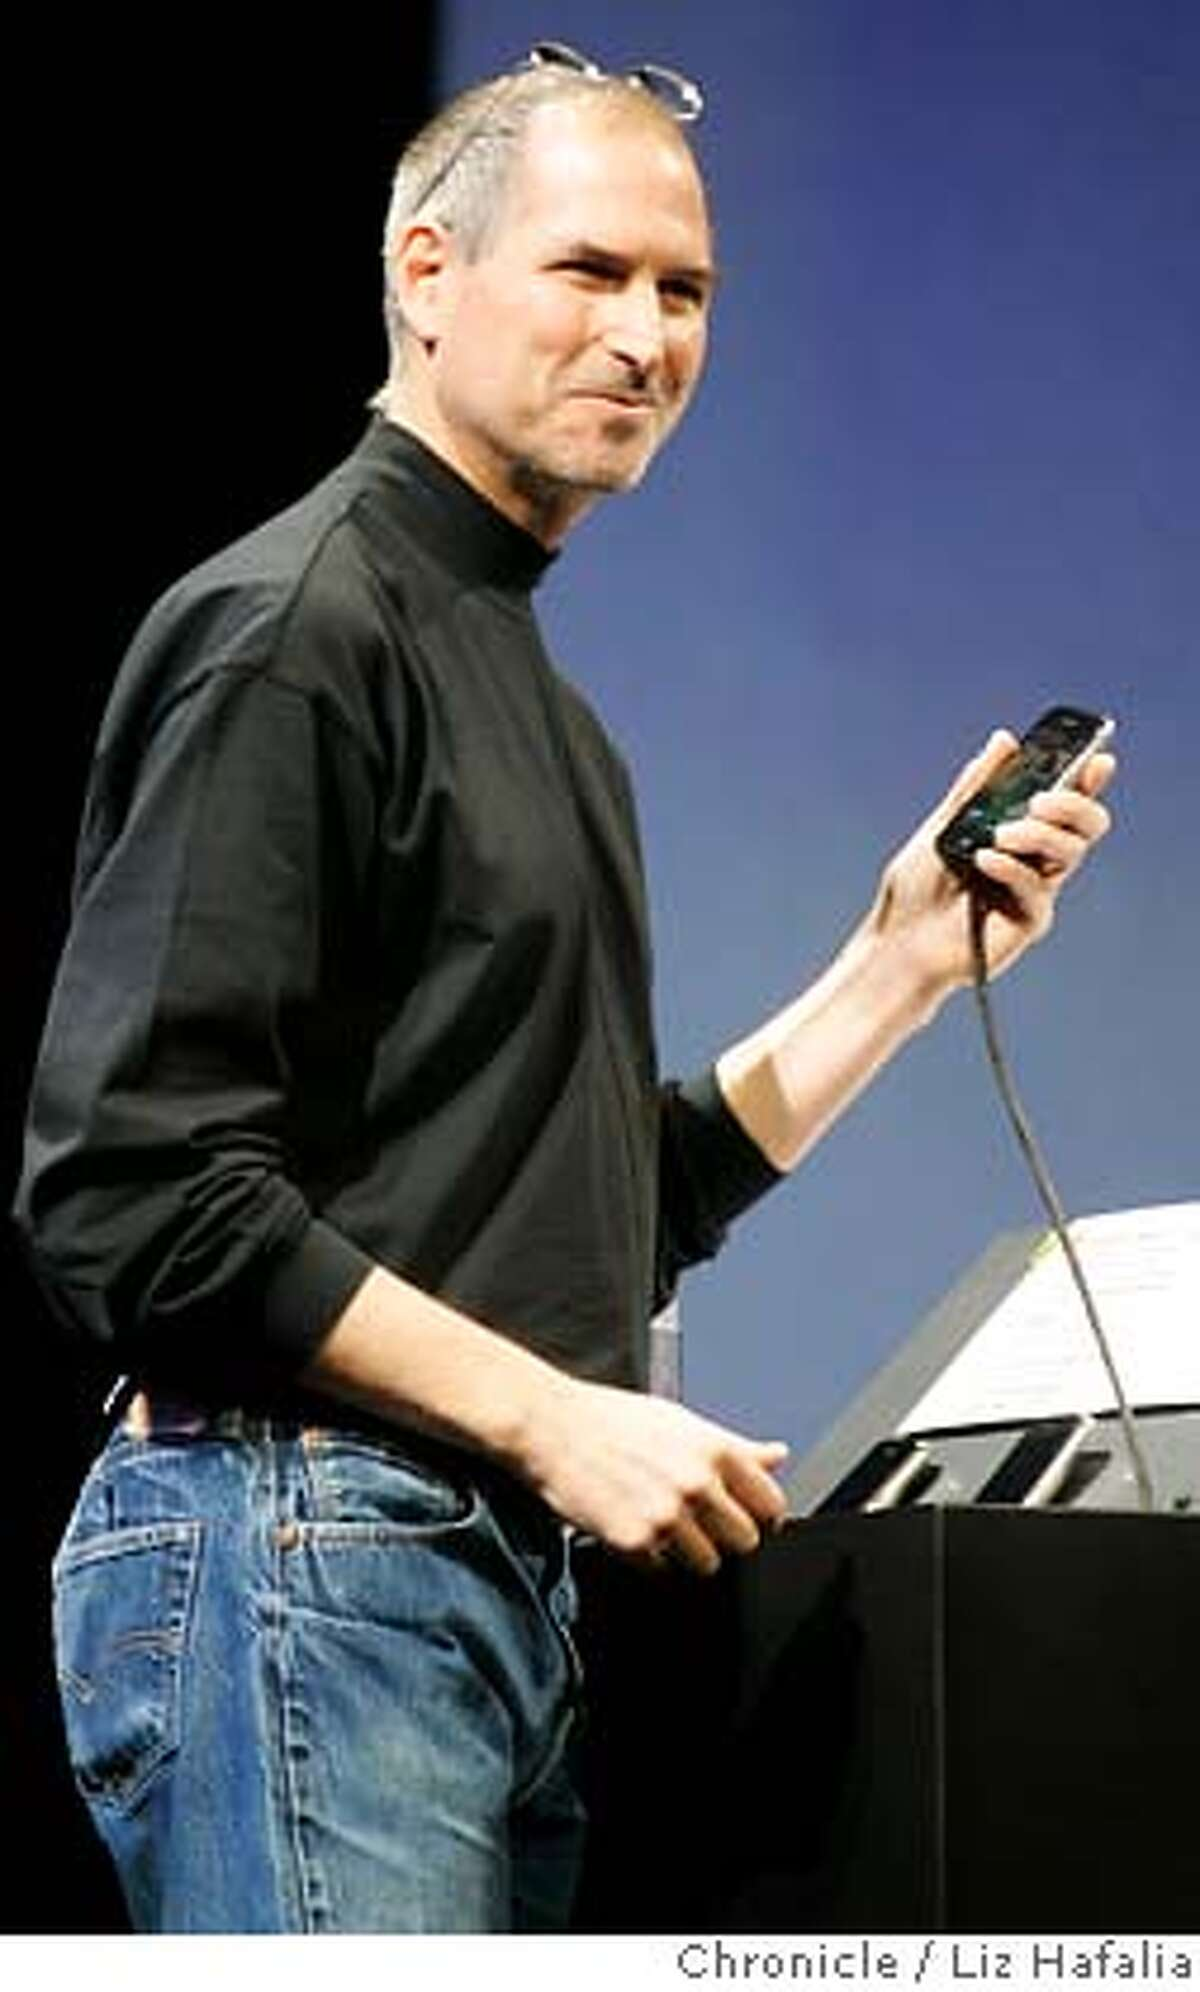 Steve Jobs introduces IPhone at the keynote address in Moscone West. Photographed by Liz Hafalia